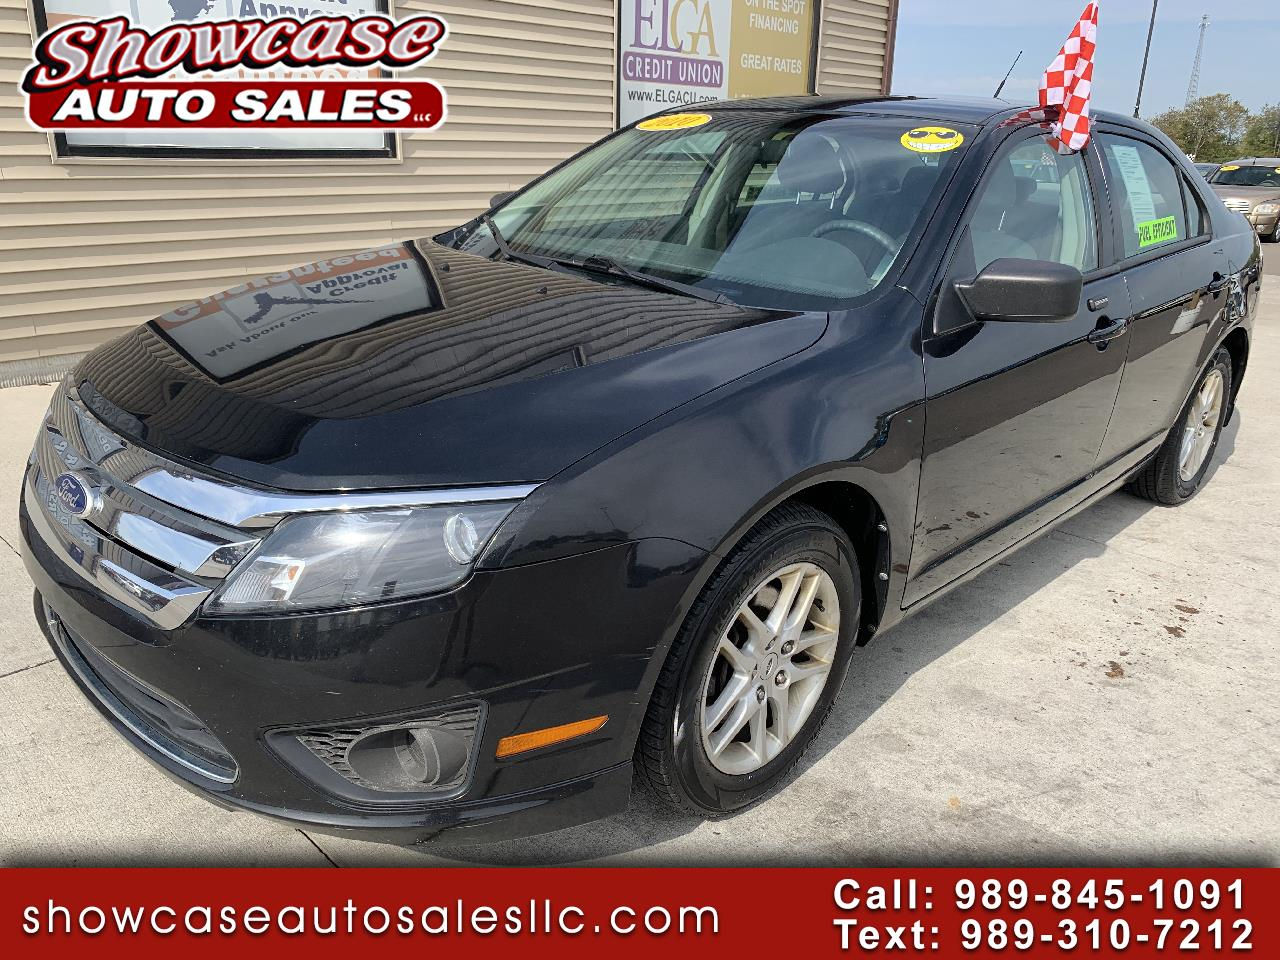 Ford Fusion 4dr Sdn S FWD 2010